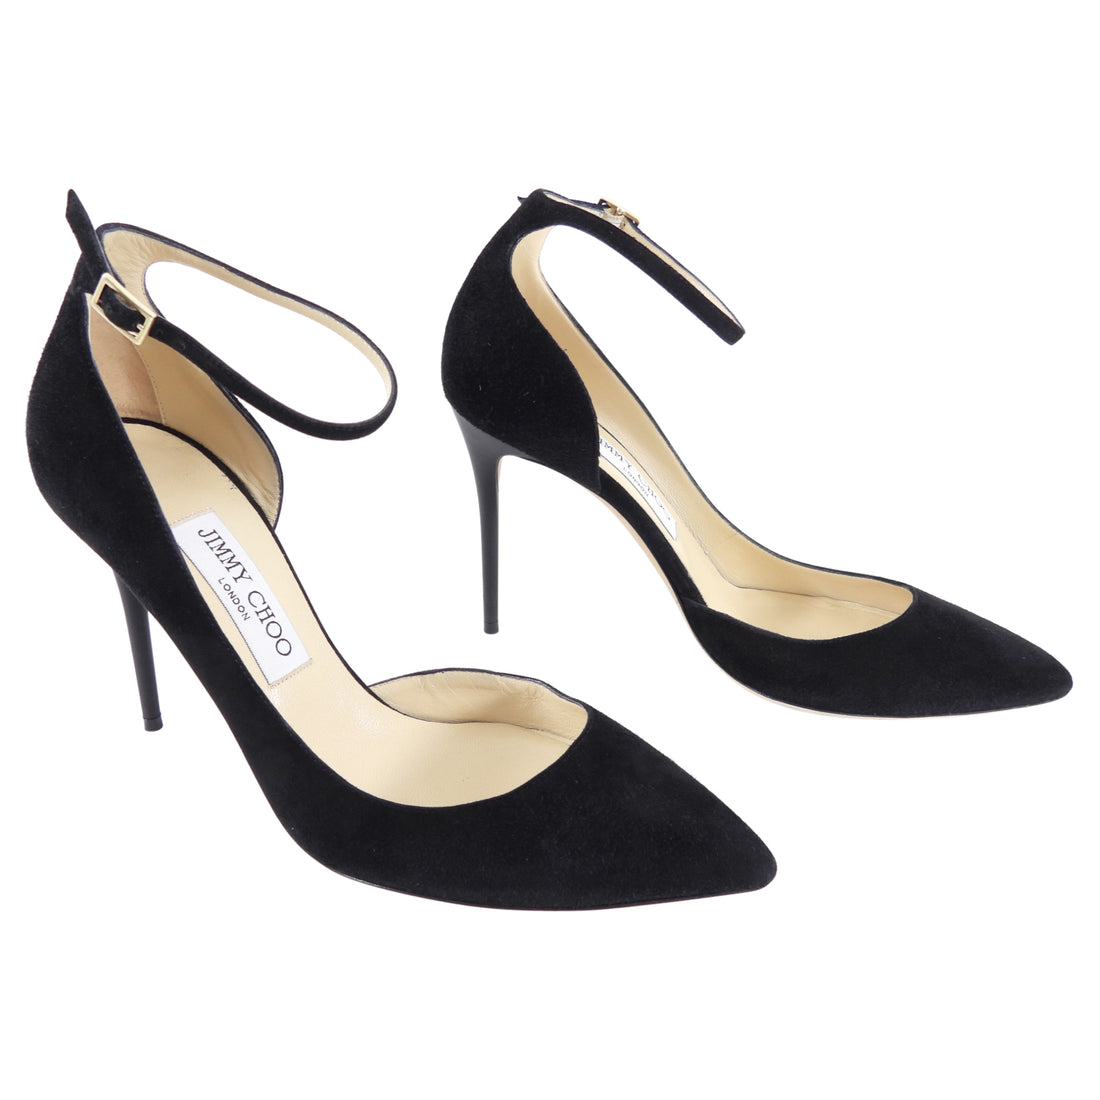 Jimmy Choo Black Suede High Heels with Ankle Strap - 38 / 7.5